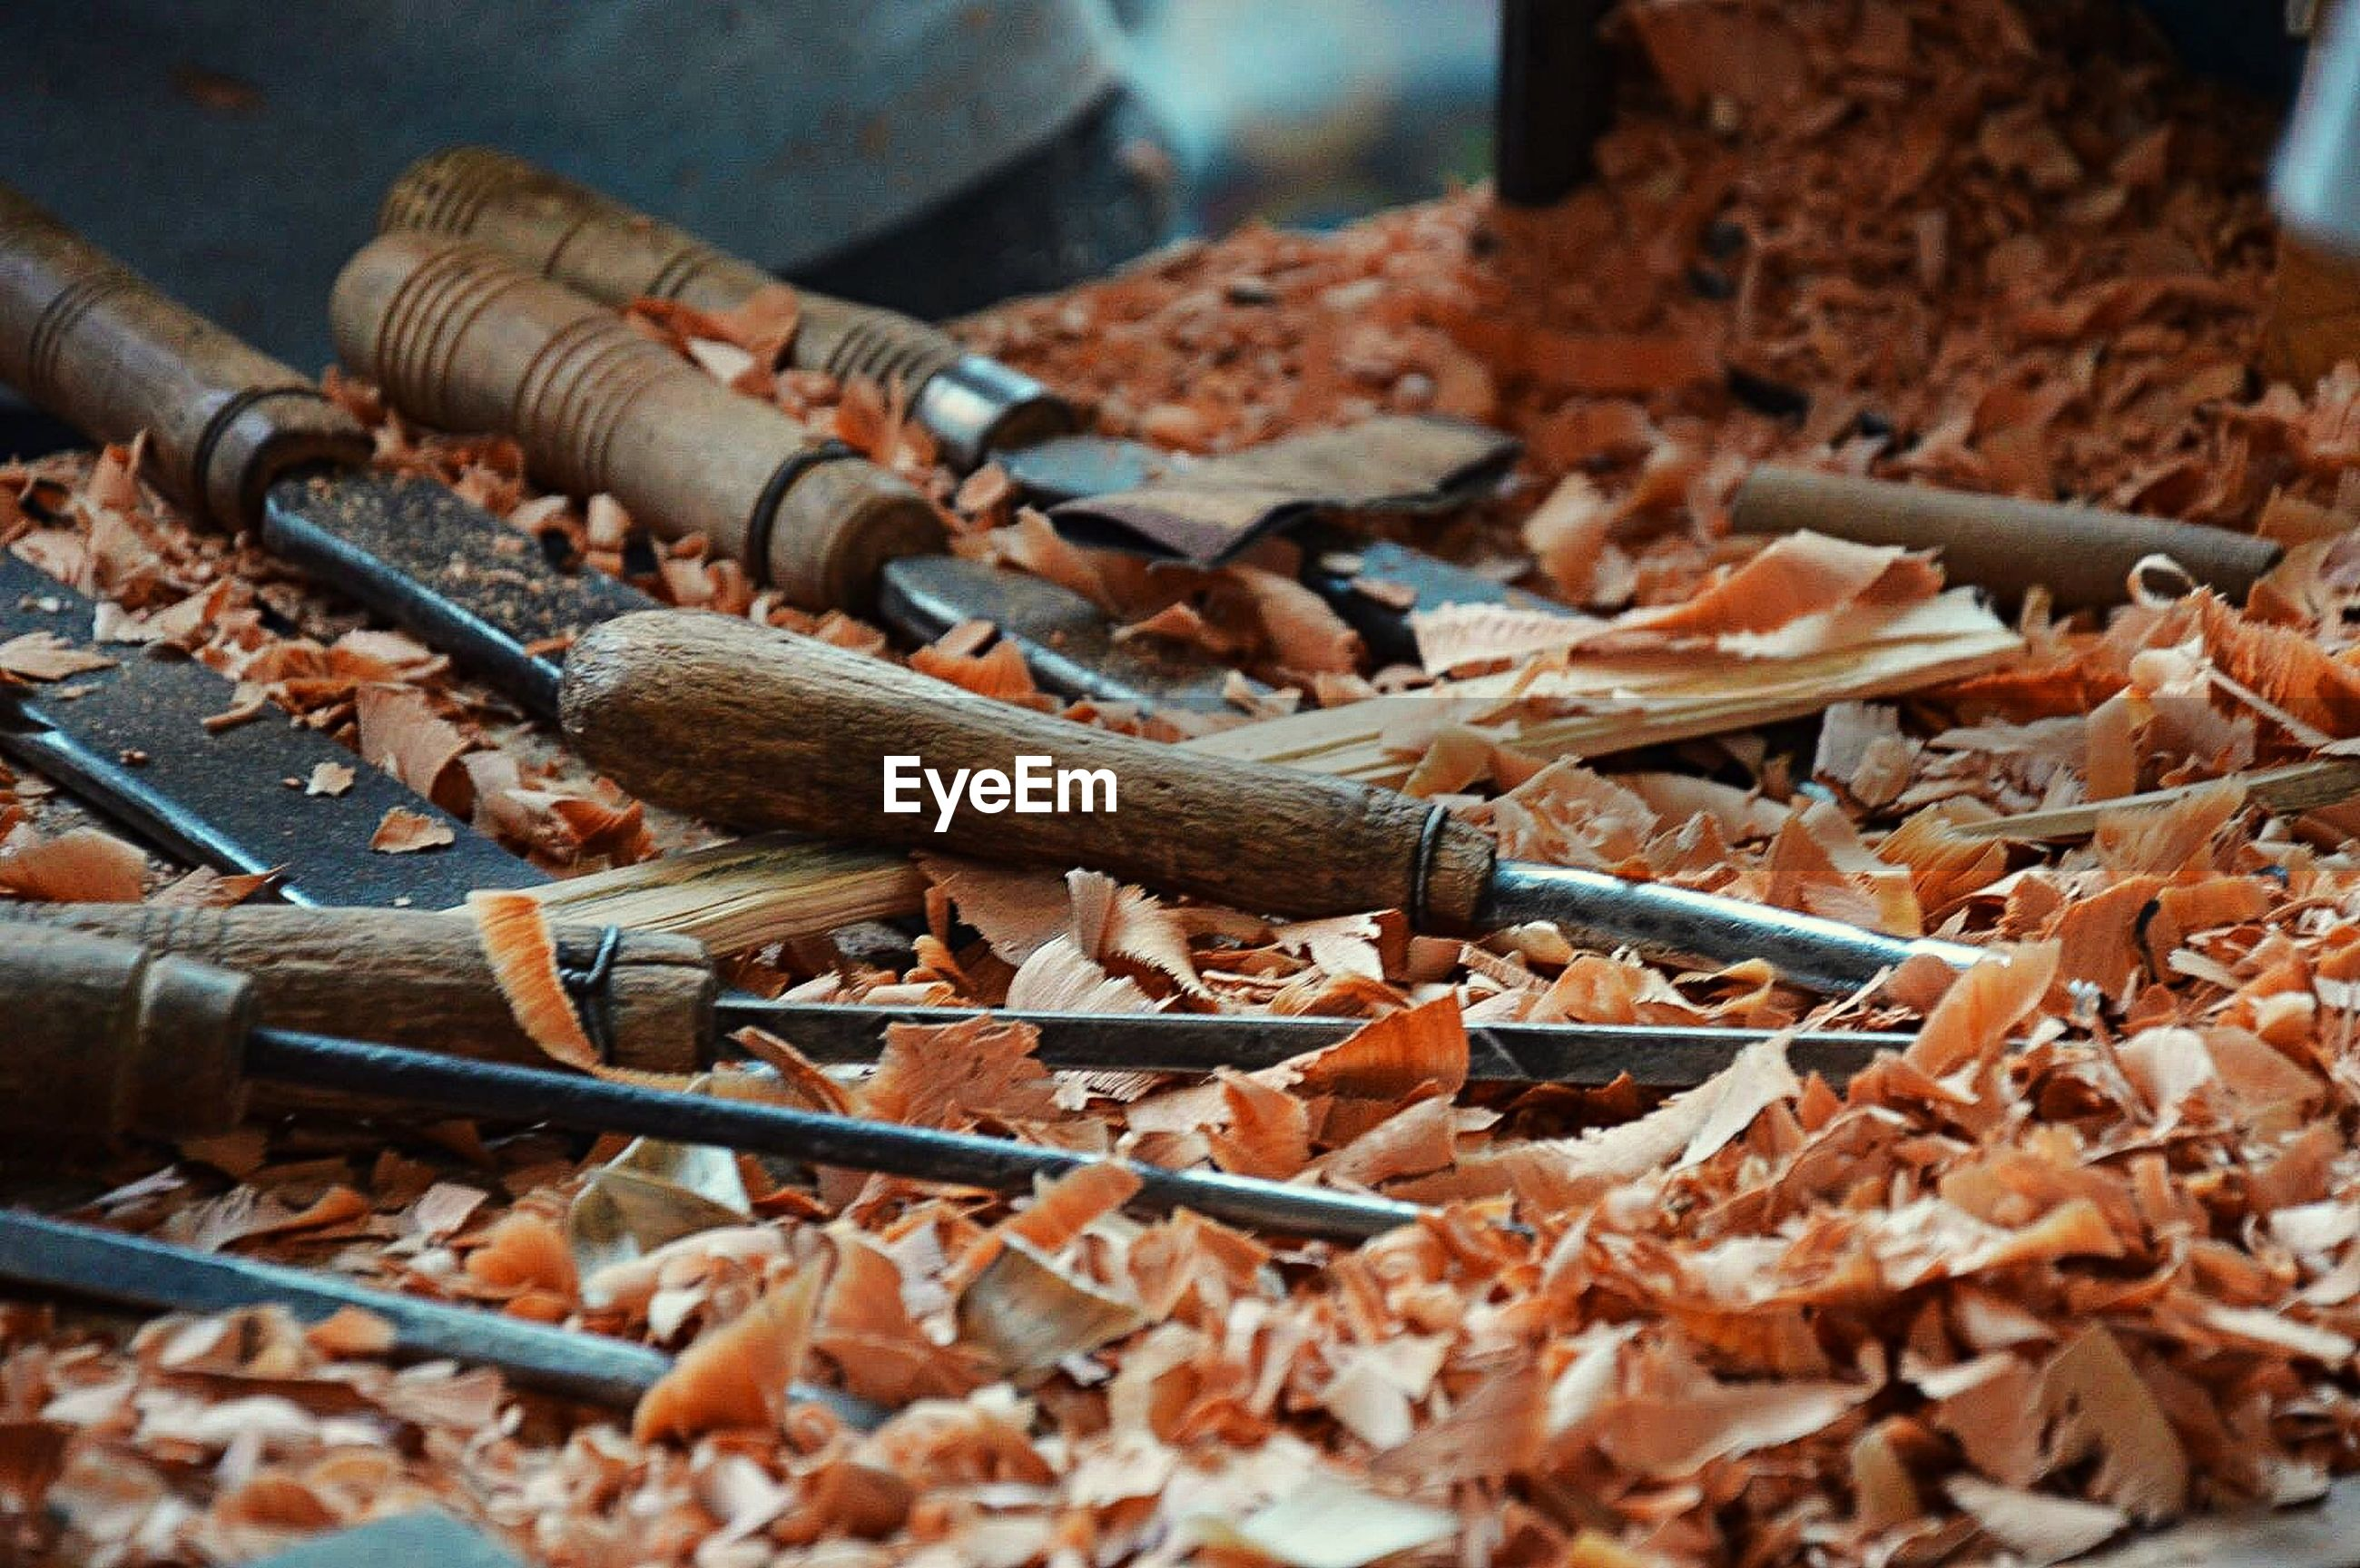 High angle view of wood shavings and tools